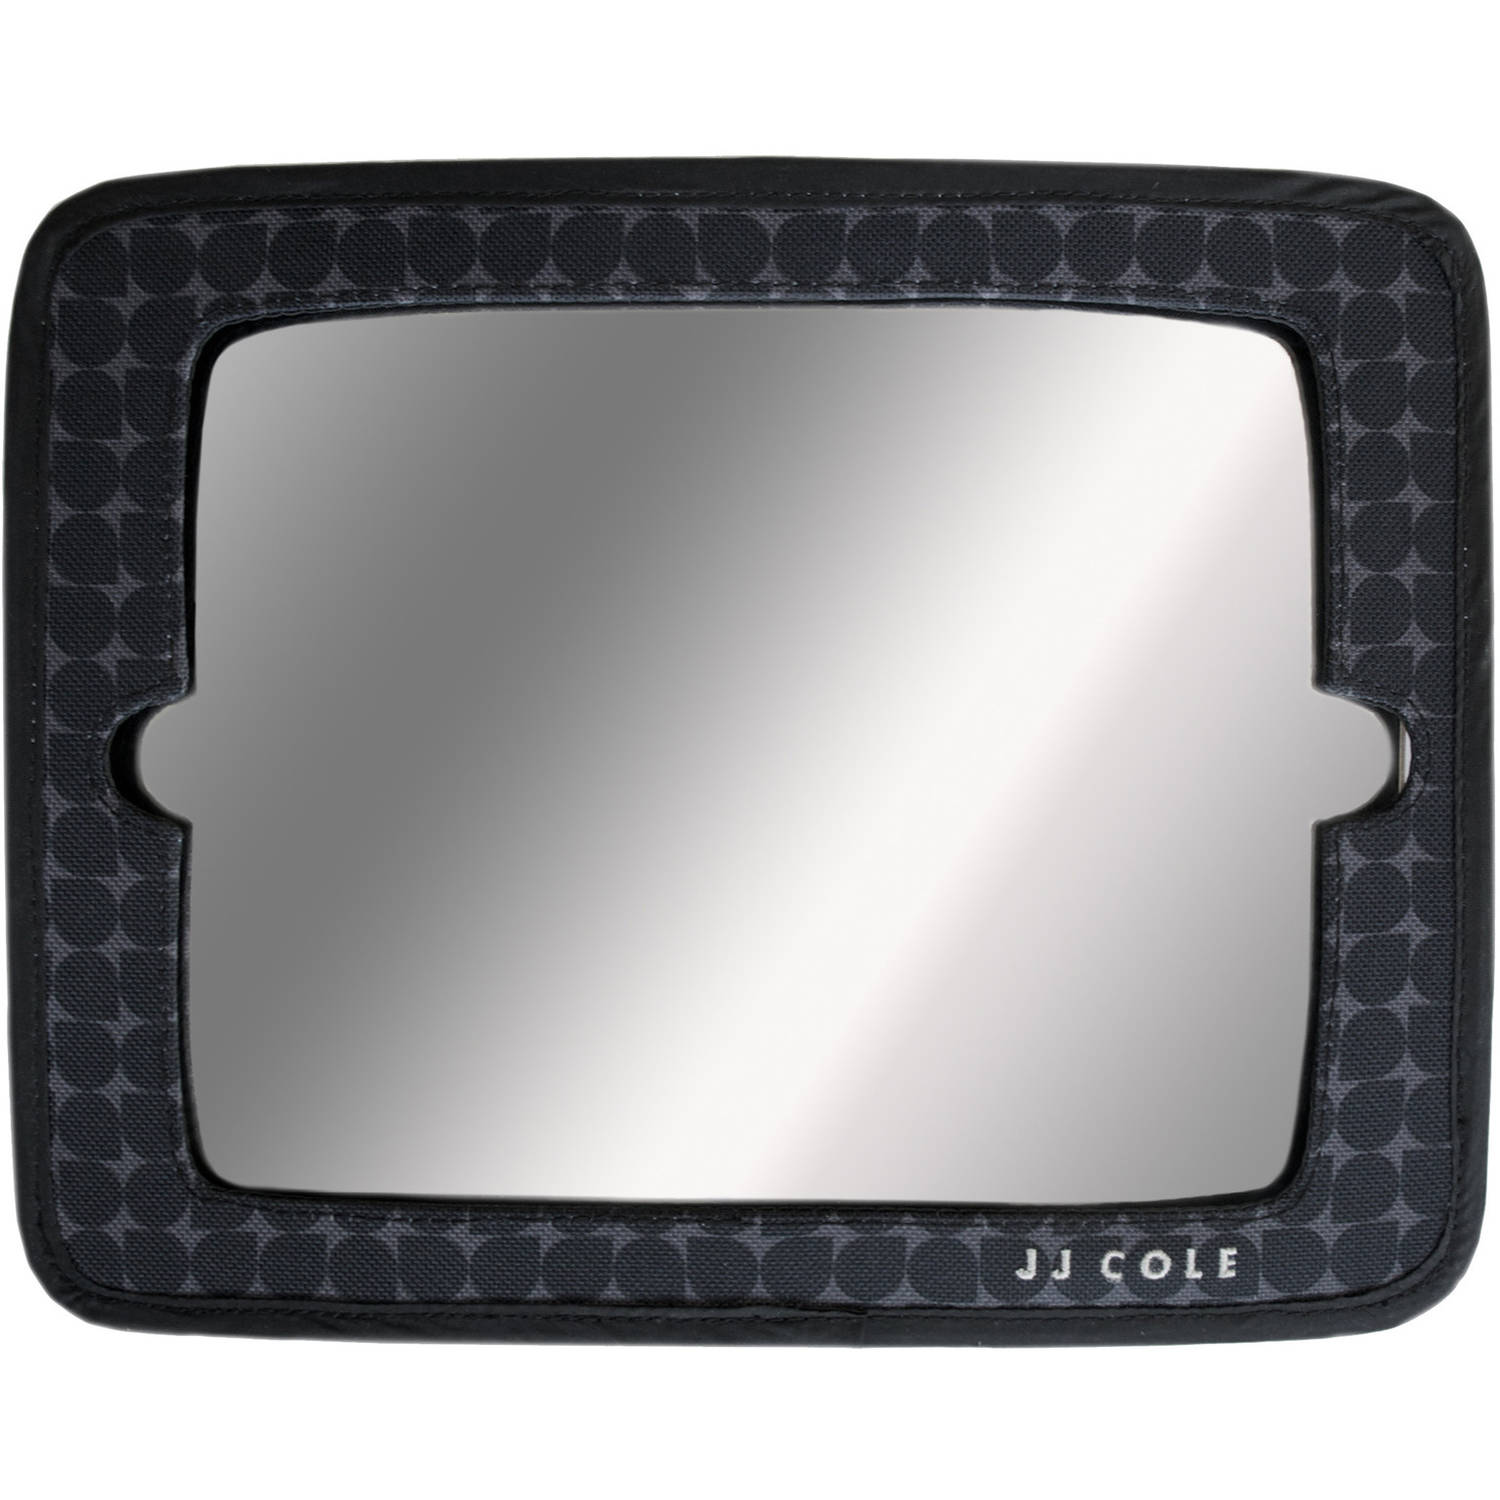 JJ Cole 2-in-1 Mirror, Silver Drop